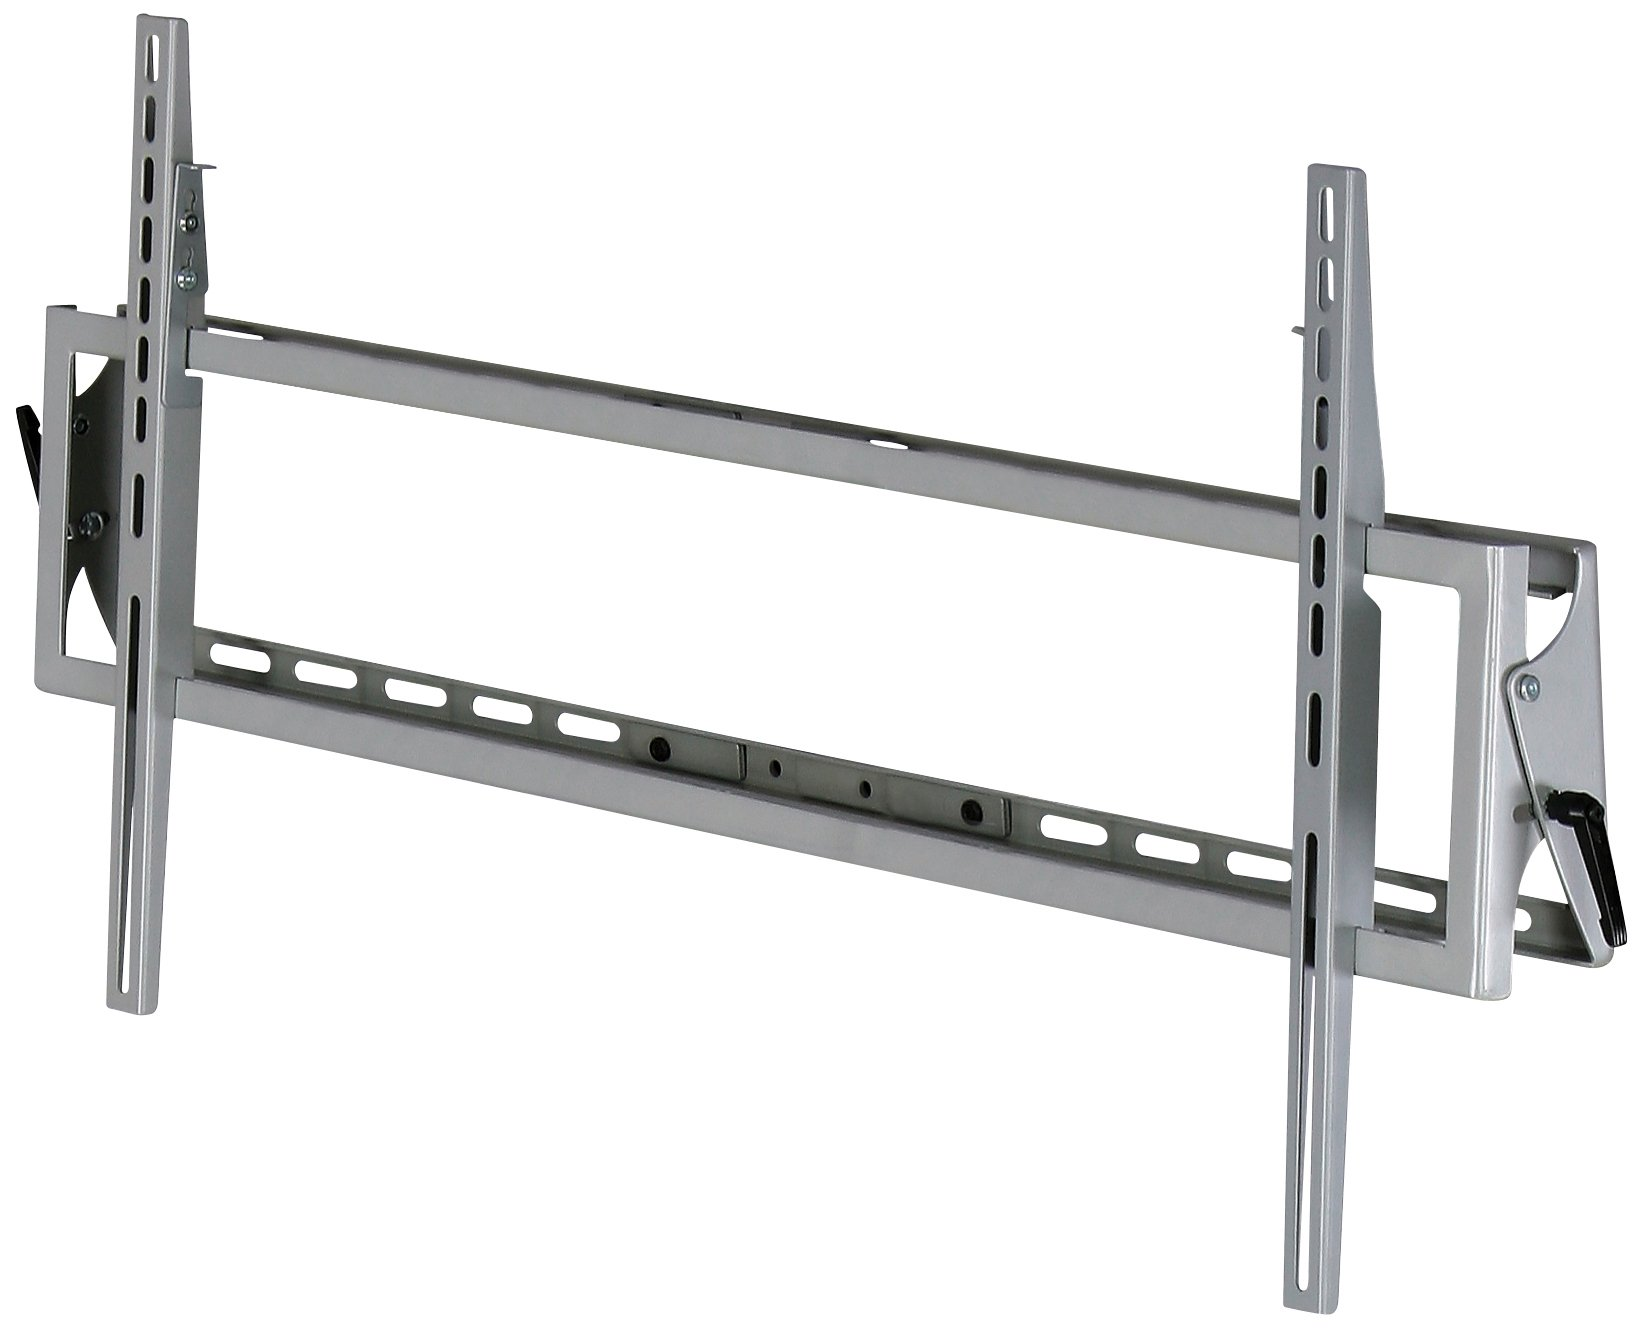 Balt Wall Mount Flat Panel TV Bracket, 30-Inch to 42-Inch and 85 lbs (66586)